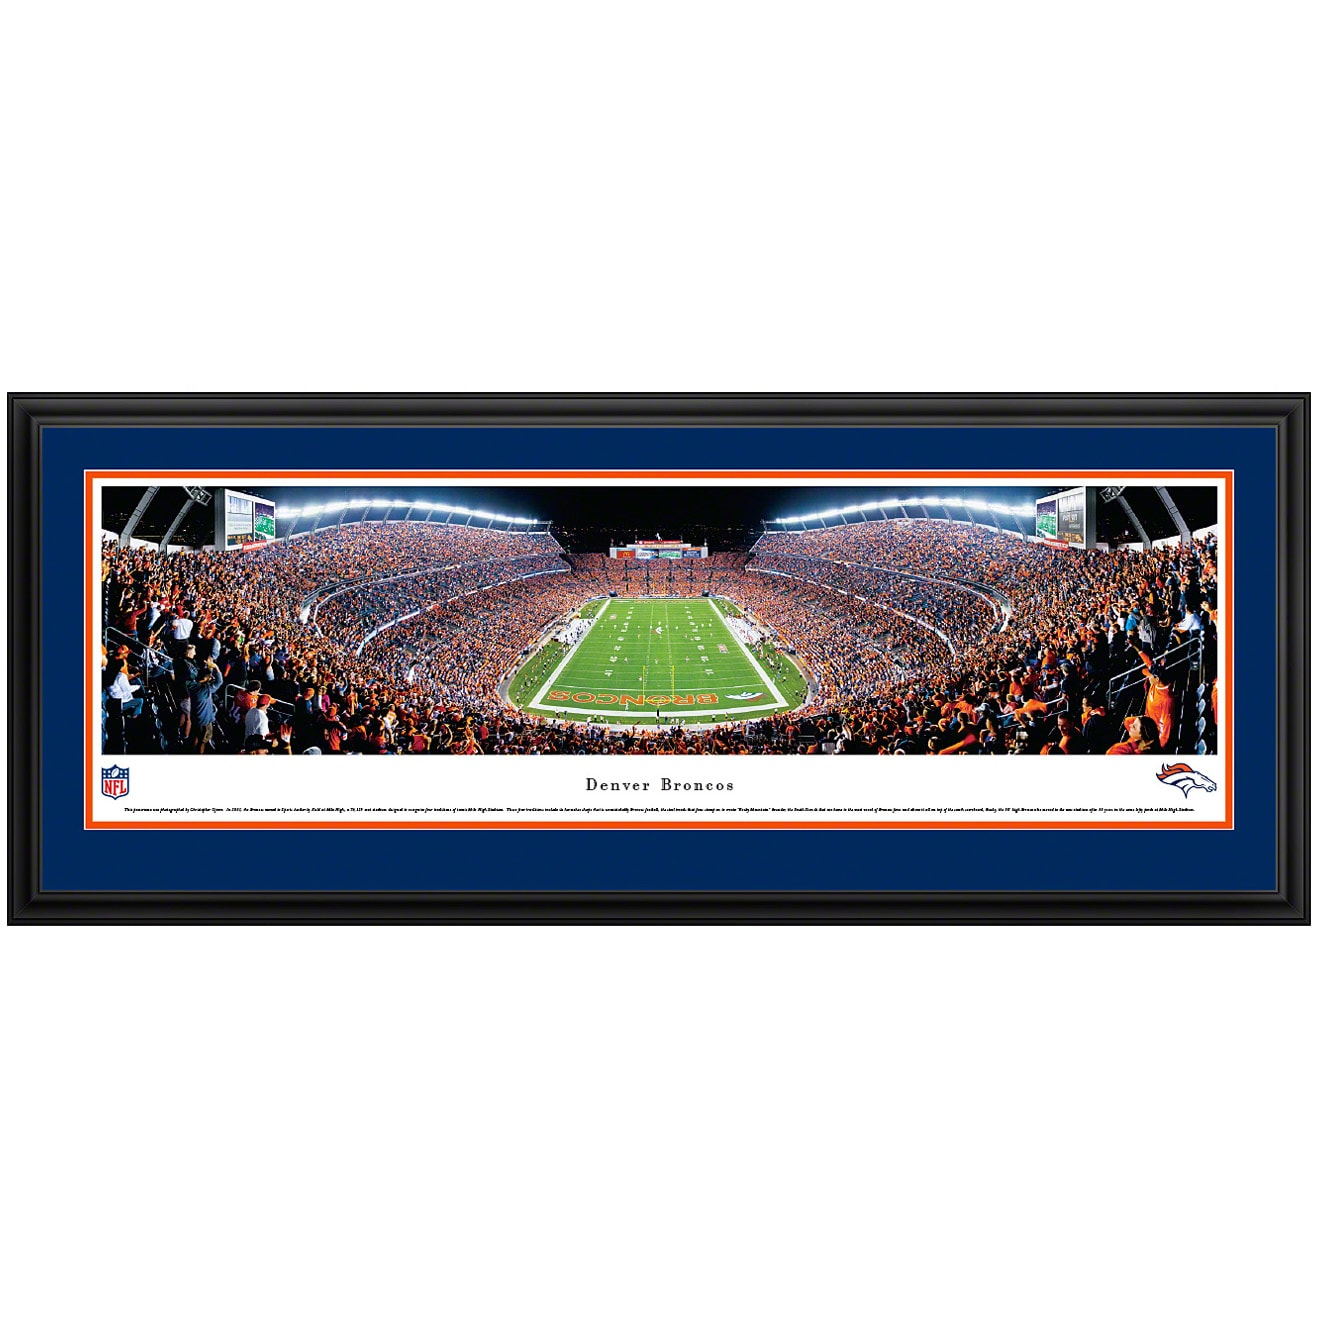 "Denver Broncos 44"" x 18"" End Zone Deluxe Frame Panoramic Photo"